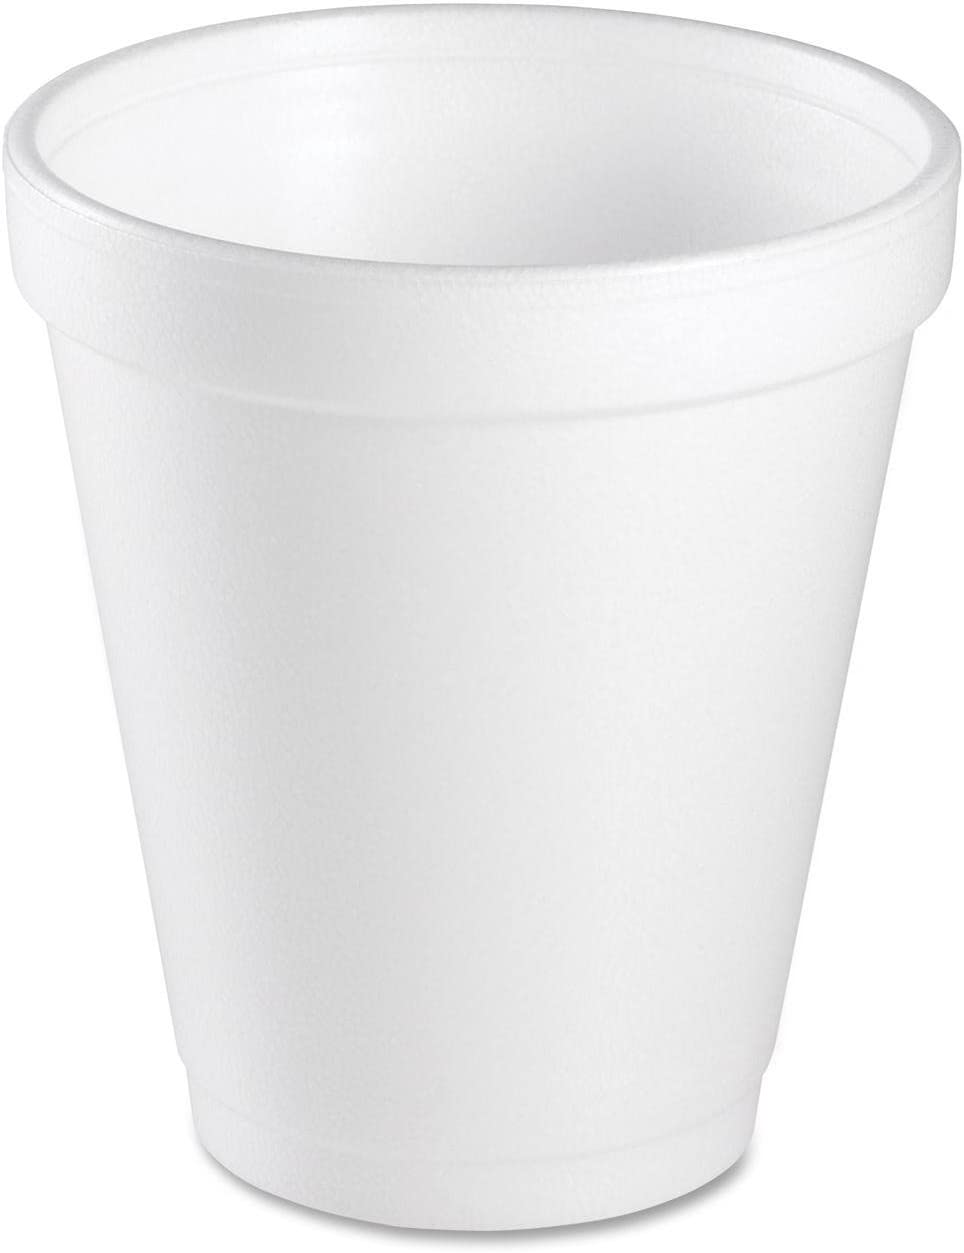 Dart 8 Oz White Disposable Coffee Very popular Foam and Cold C Hot Cups Drink Washington Mall